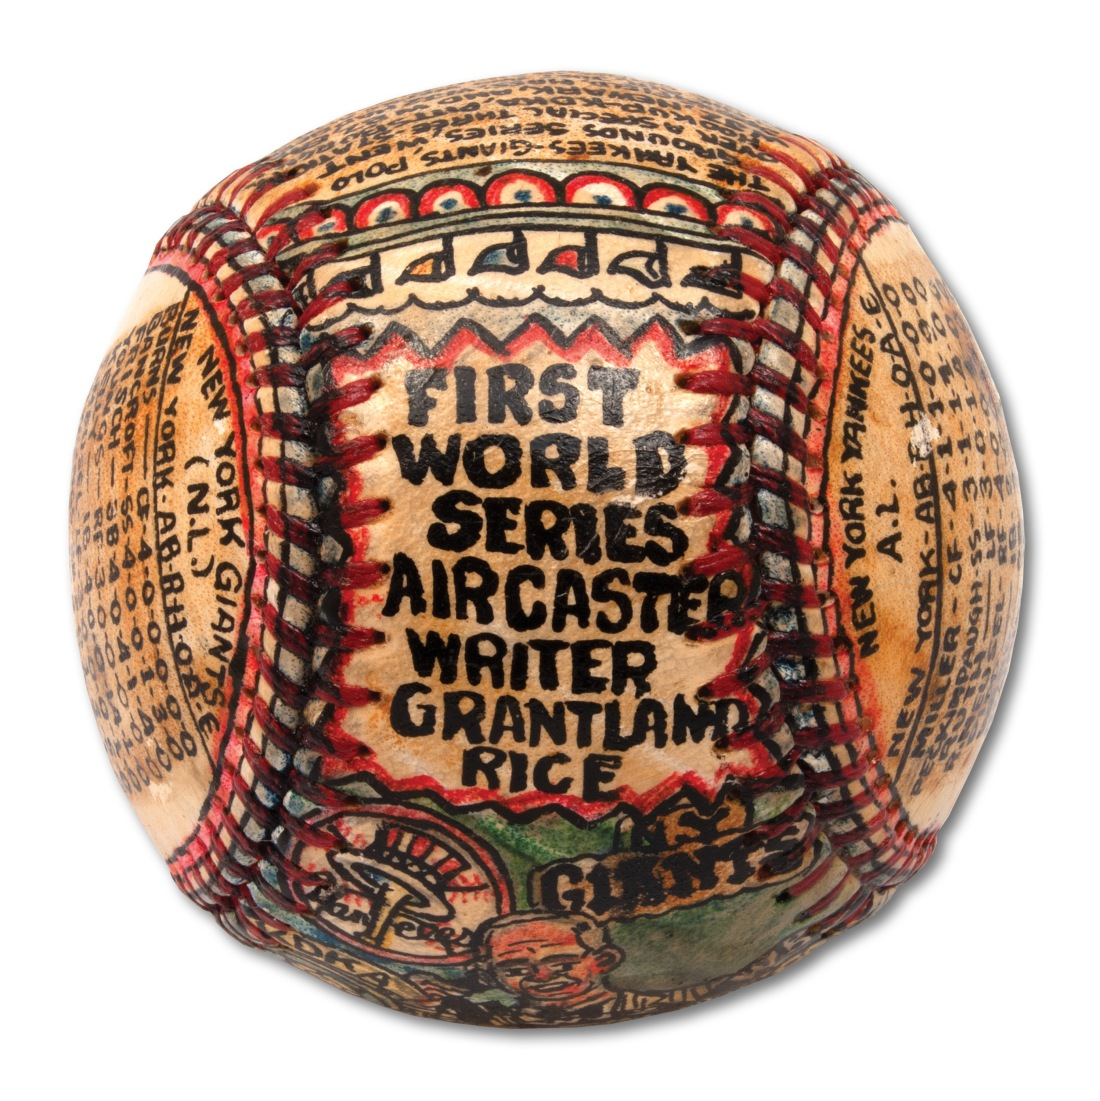 """A baseball transformed by self-taught artist George Sosnak. This angle showcases the words """"First World Series Aircaster Writer Grantland Rice."""""""